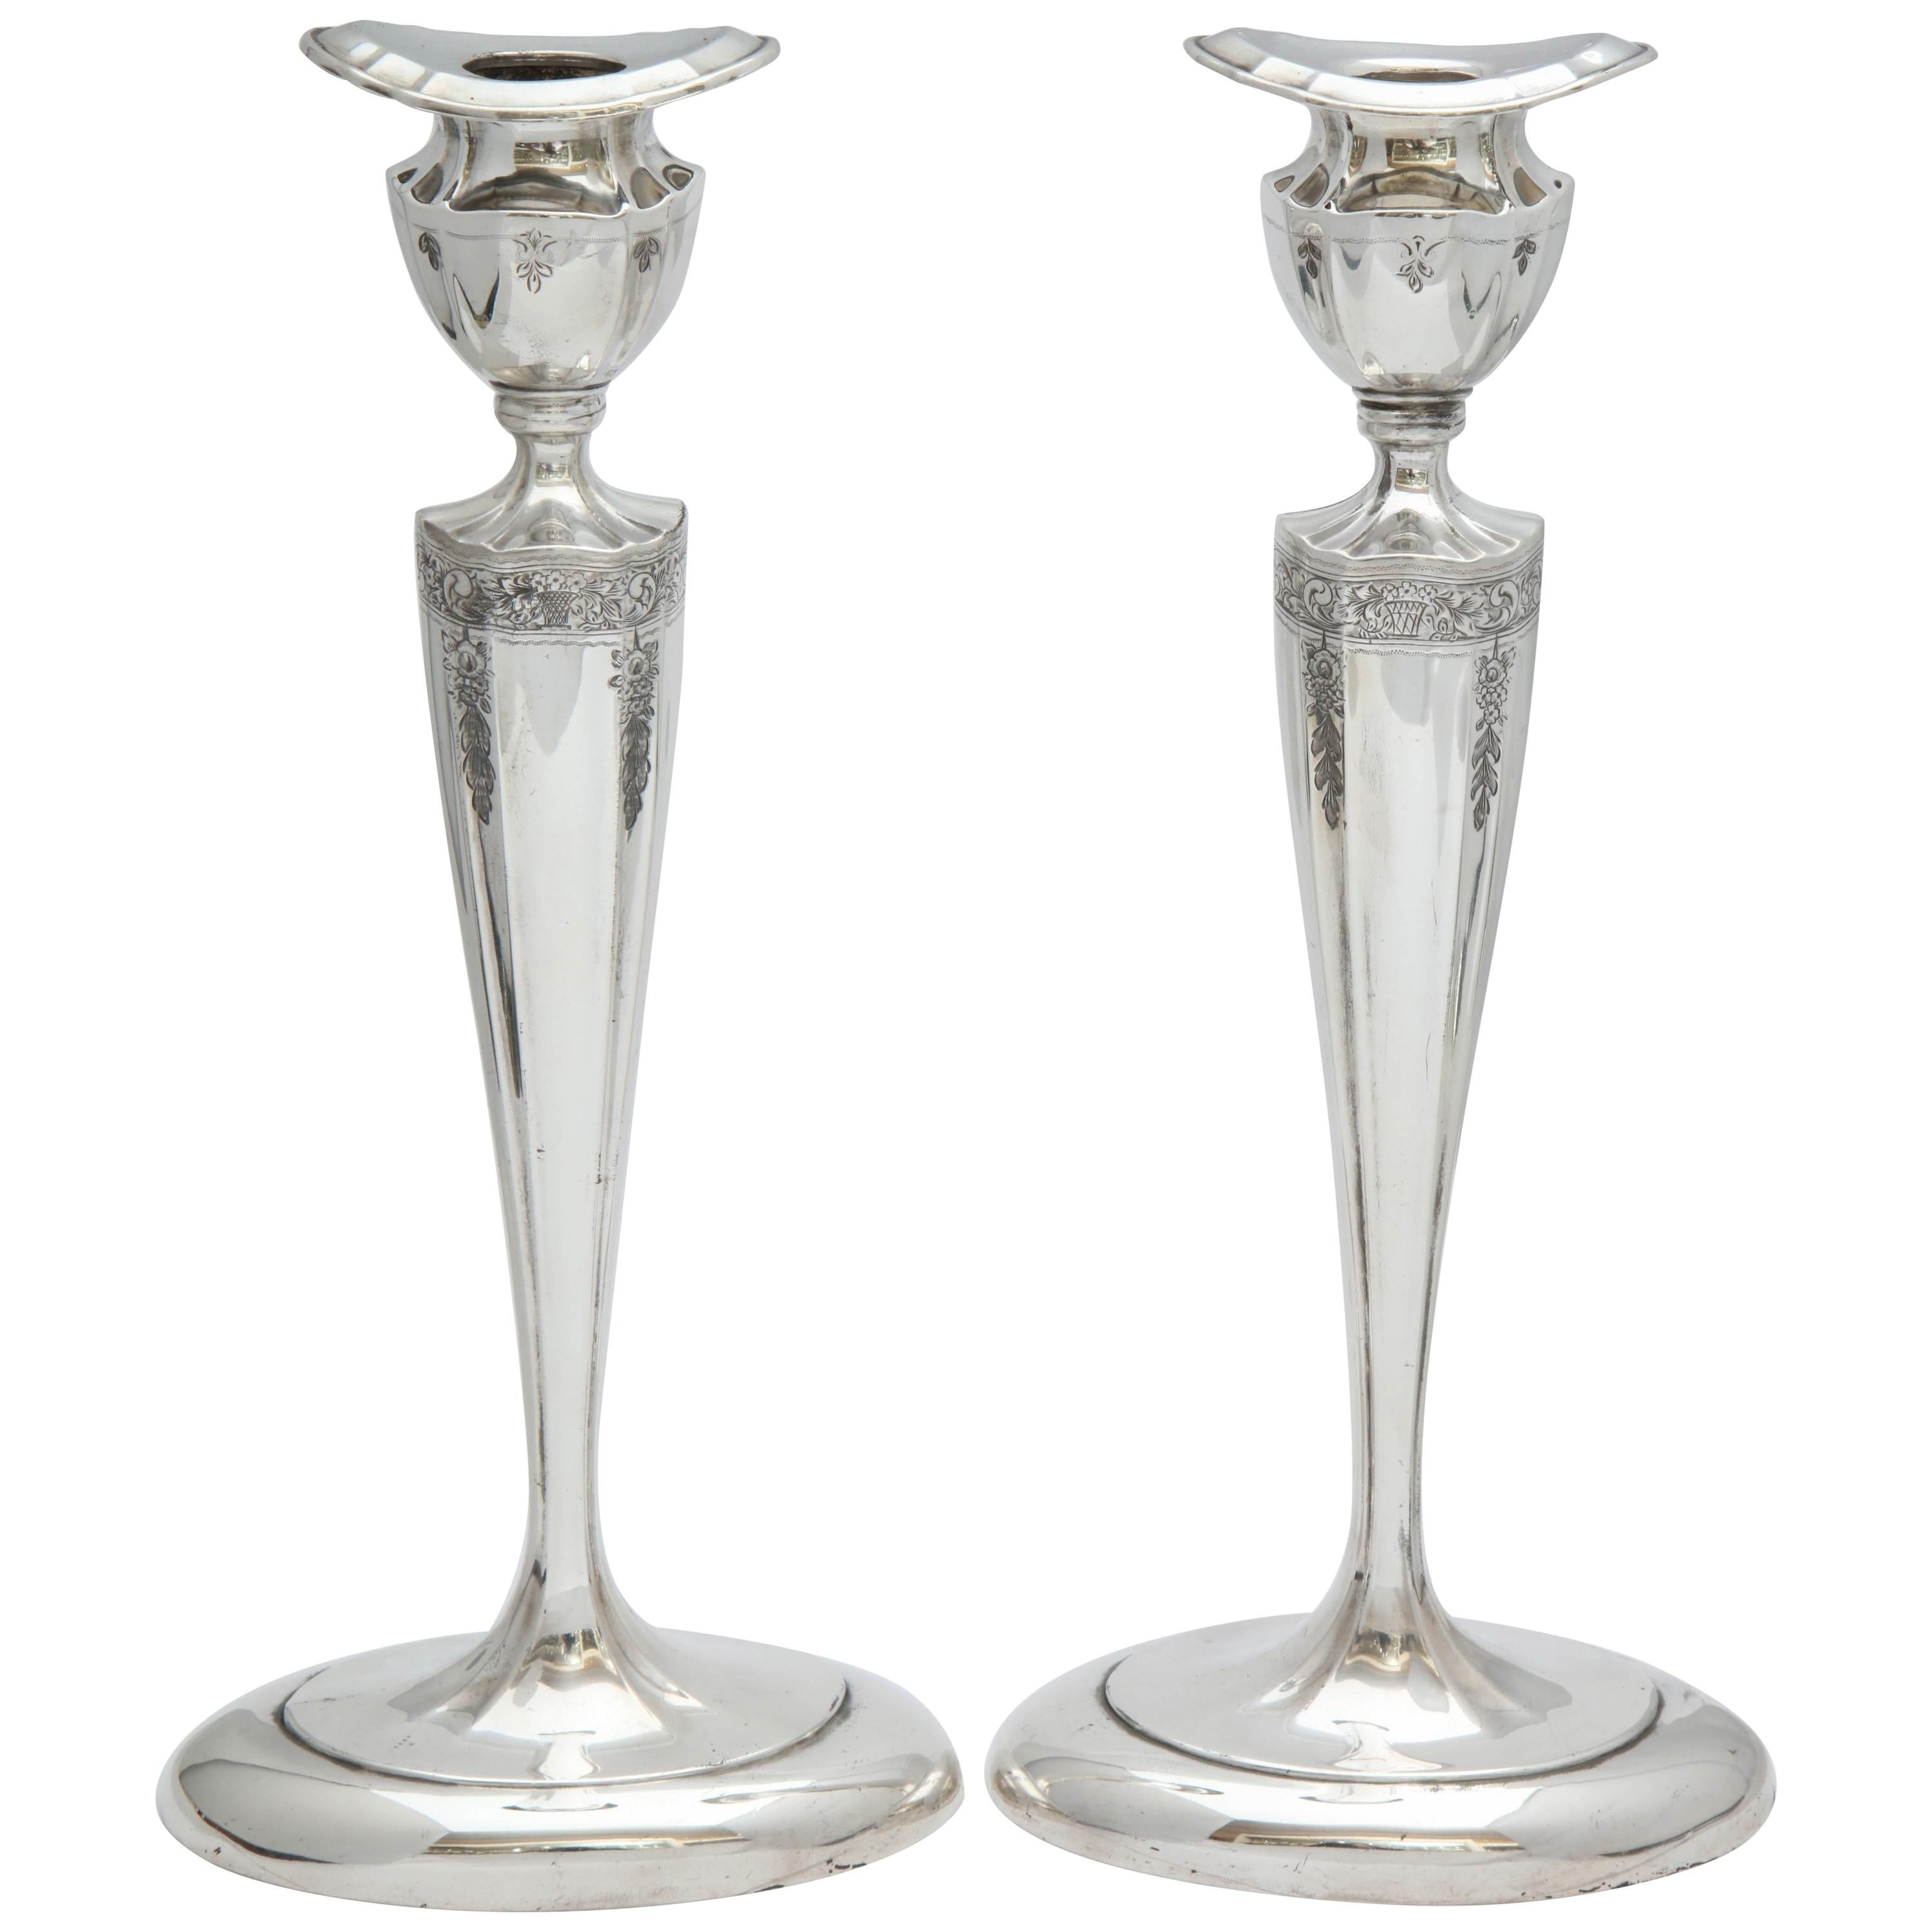 faf1b413fa4 Silver Candle Holders - 639 For Sale at 1stdibs